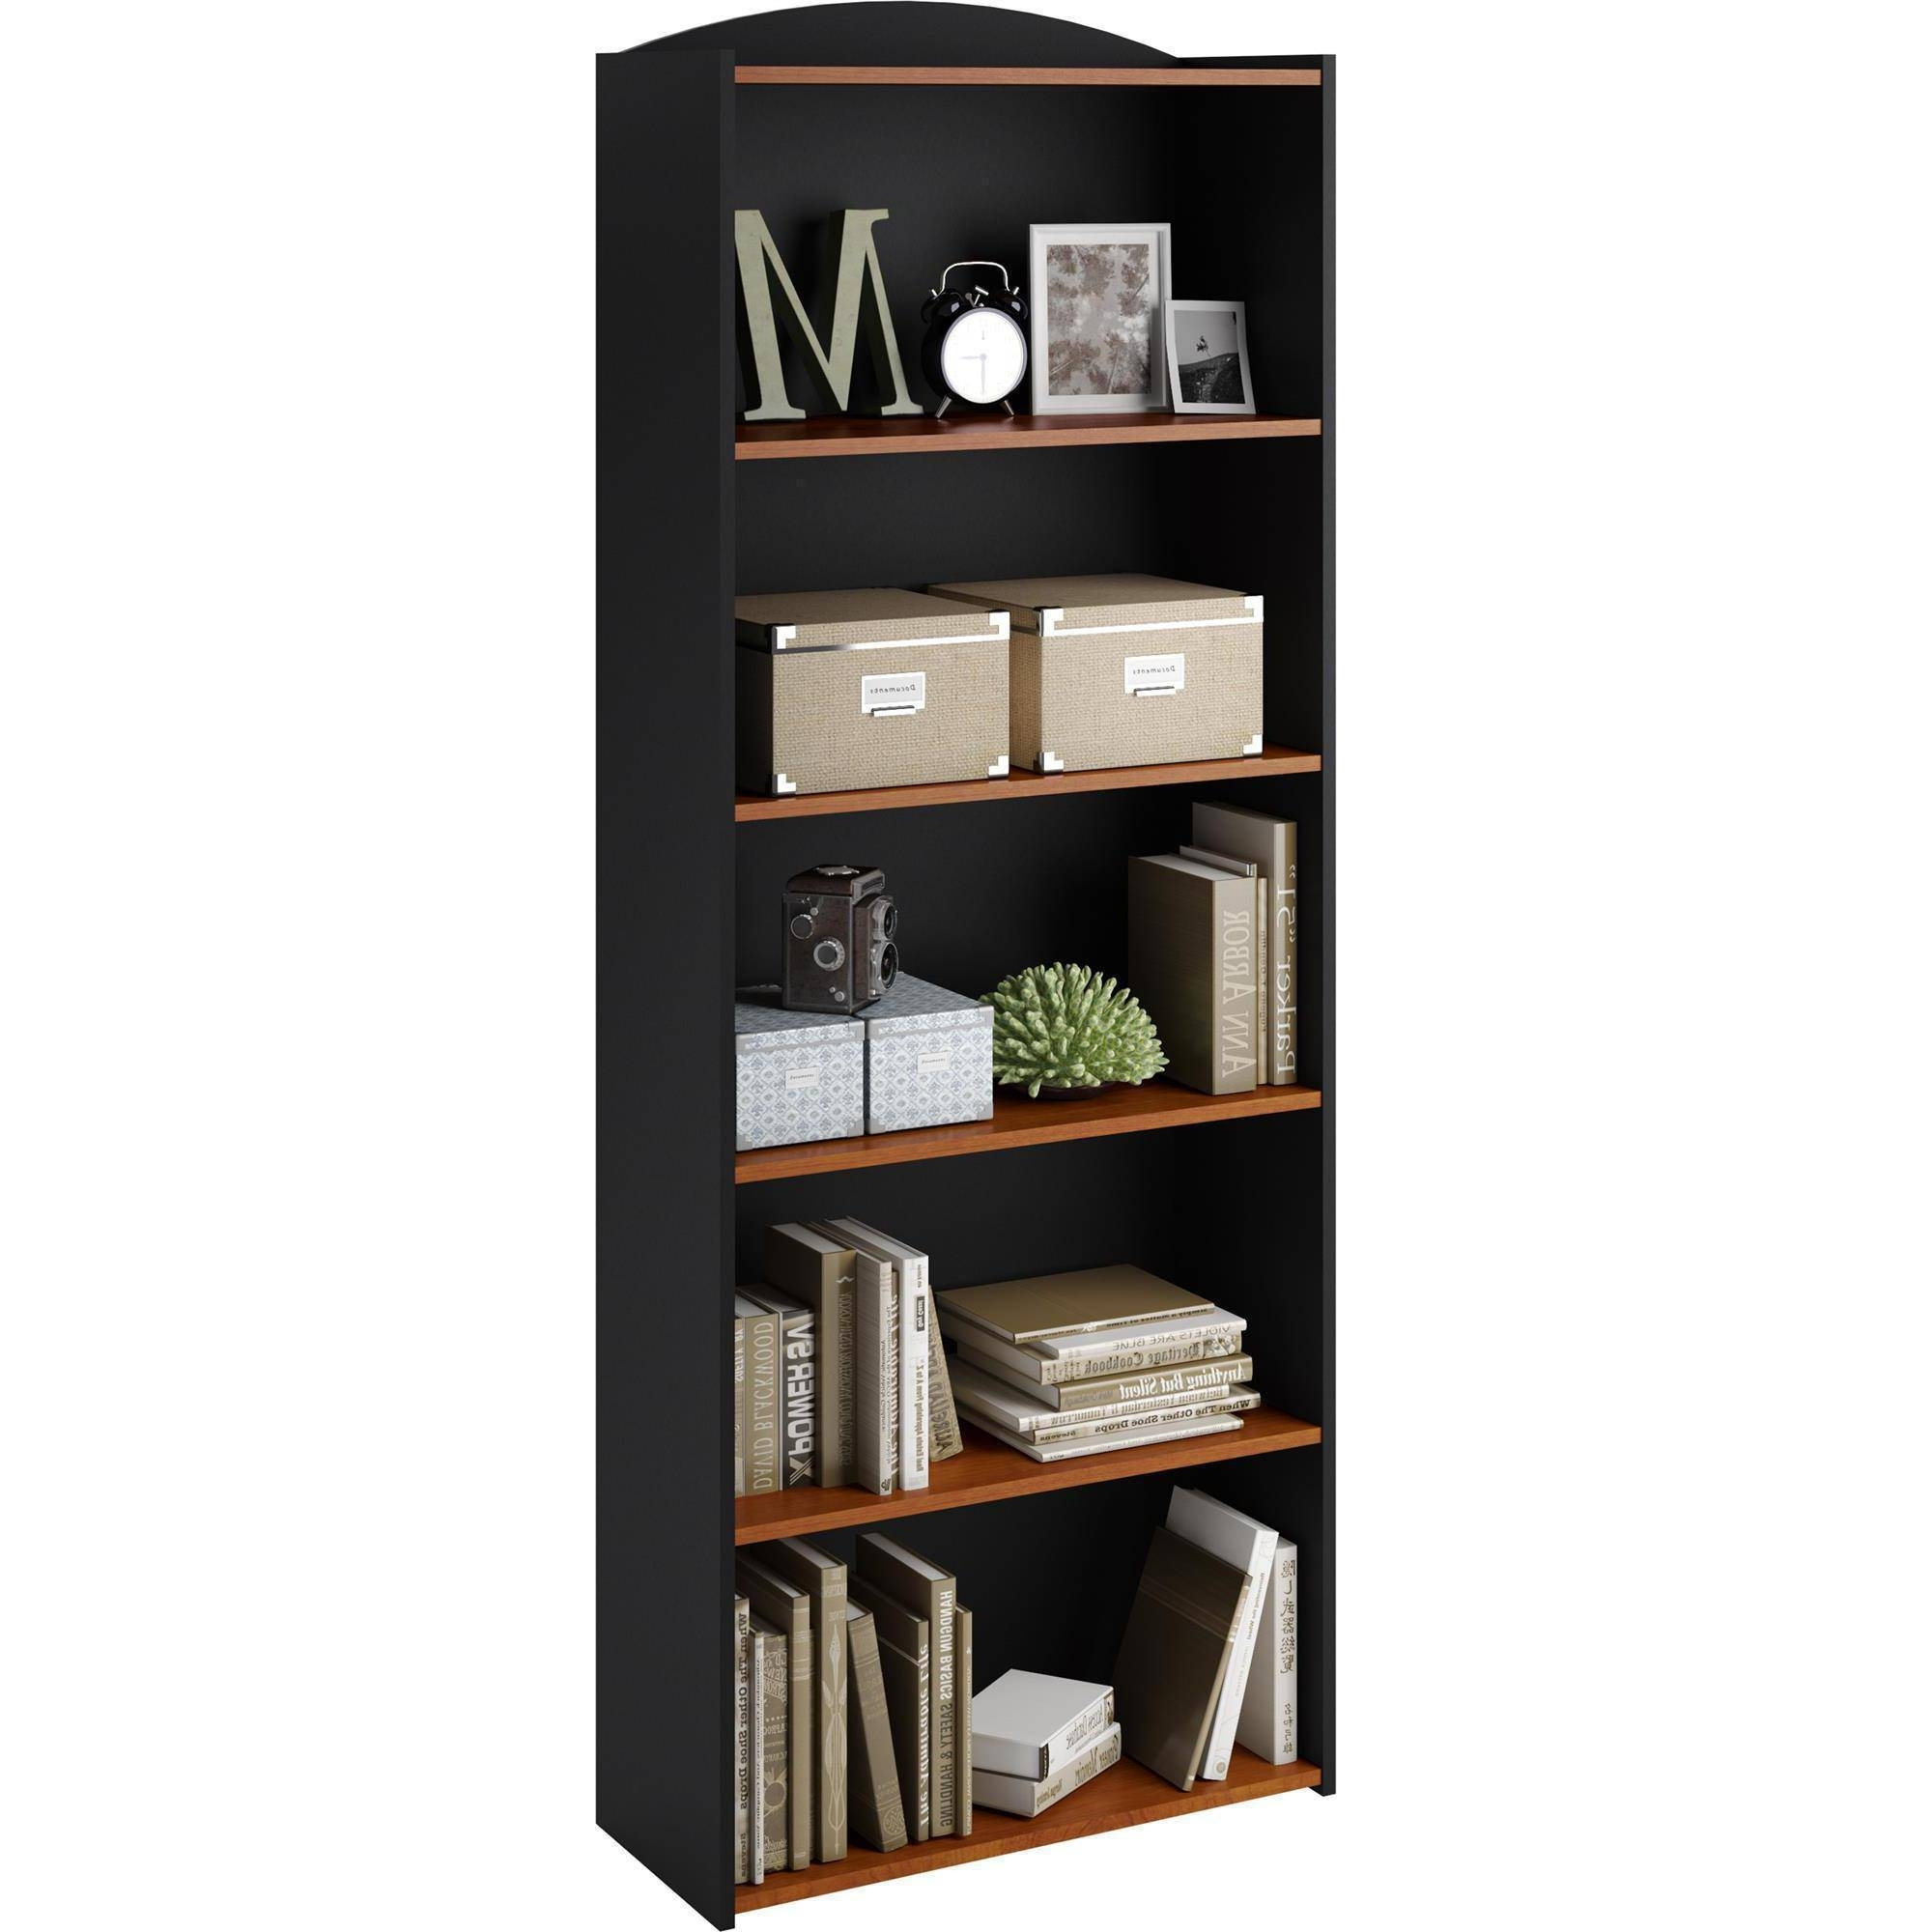 South Shore 5 Shelf Bookcases Throughout Most Up To Date Mainstays 5 Shelf Bookcase, Multiple Colors – Walmart (View 10 of 15)